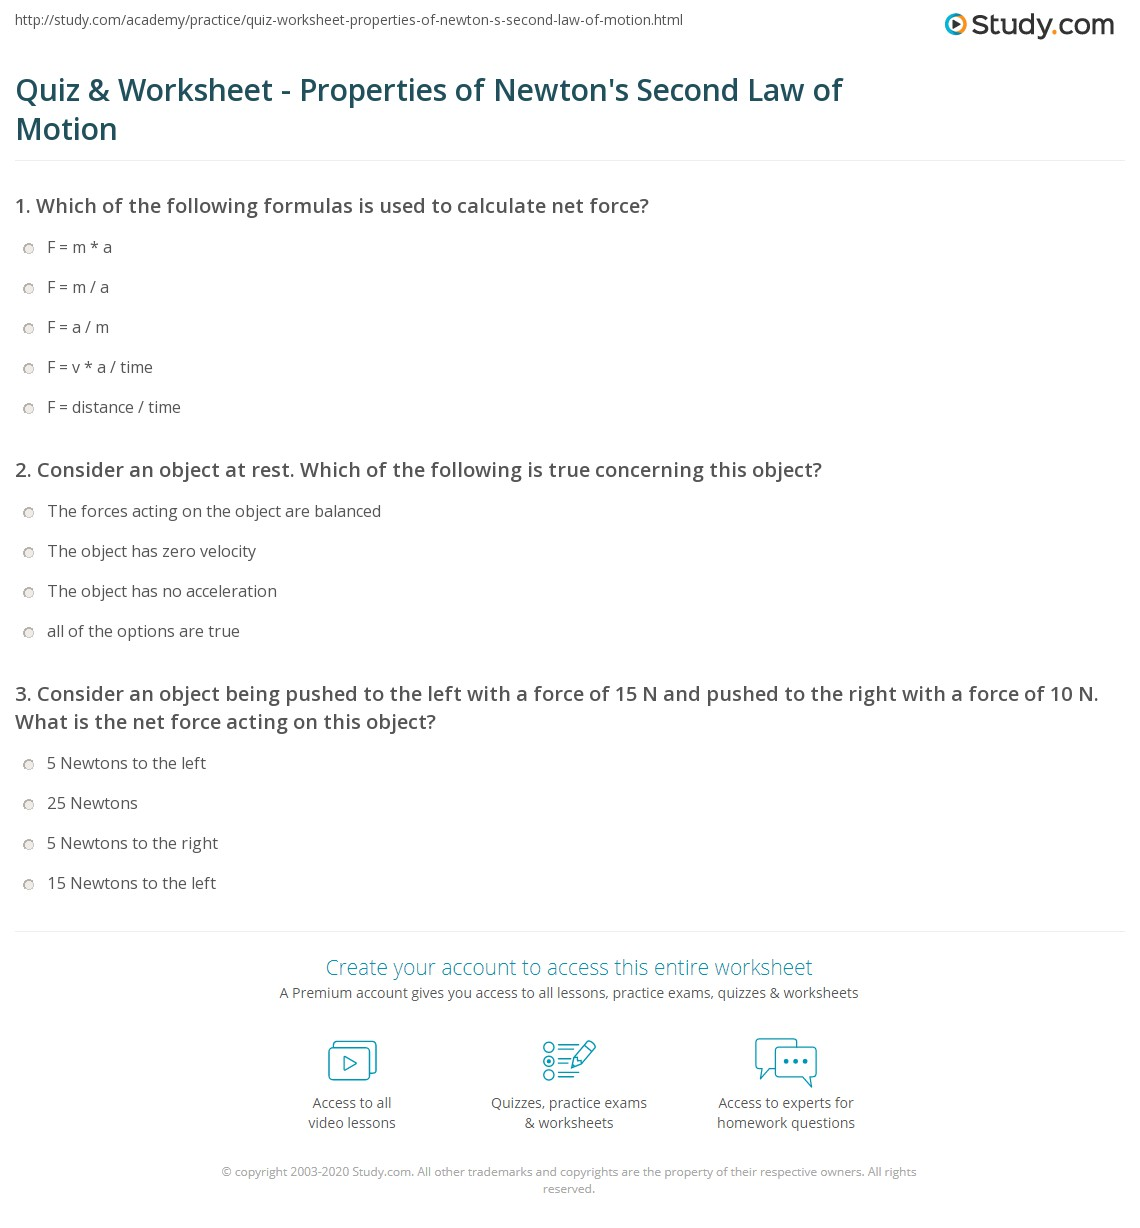 quiz worksheet properties of newton 39 s second law of motion. Black Bedroom Furniture Sets. Home Design Ideas